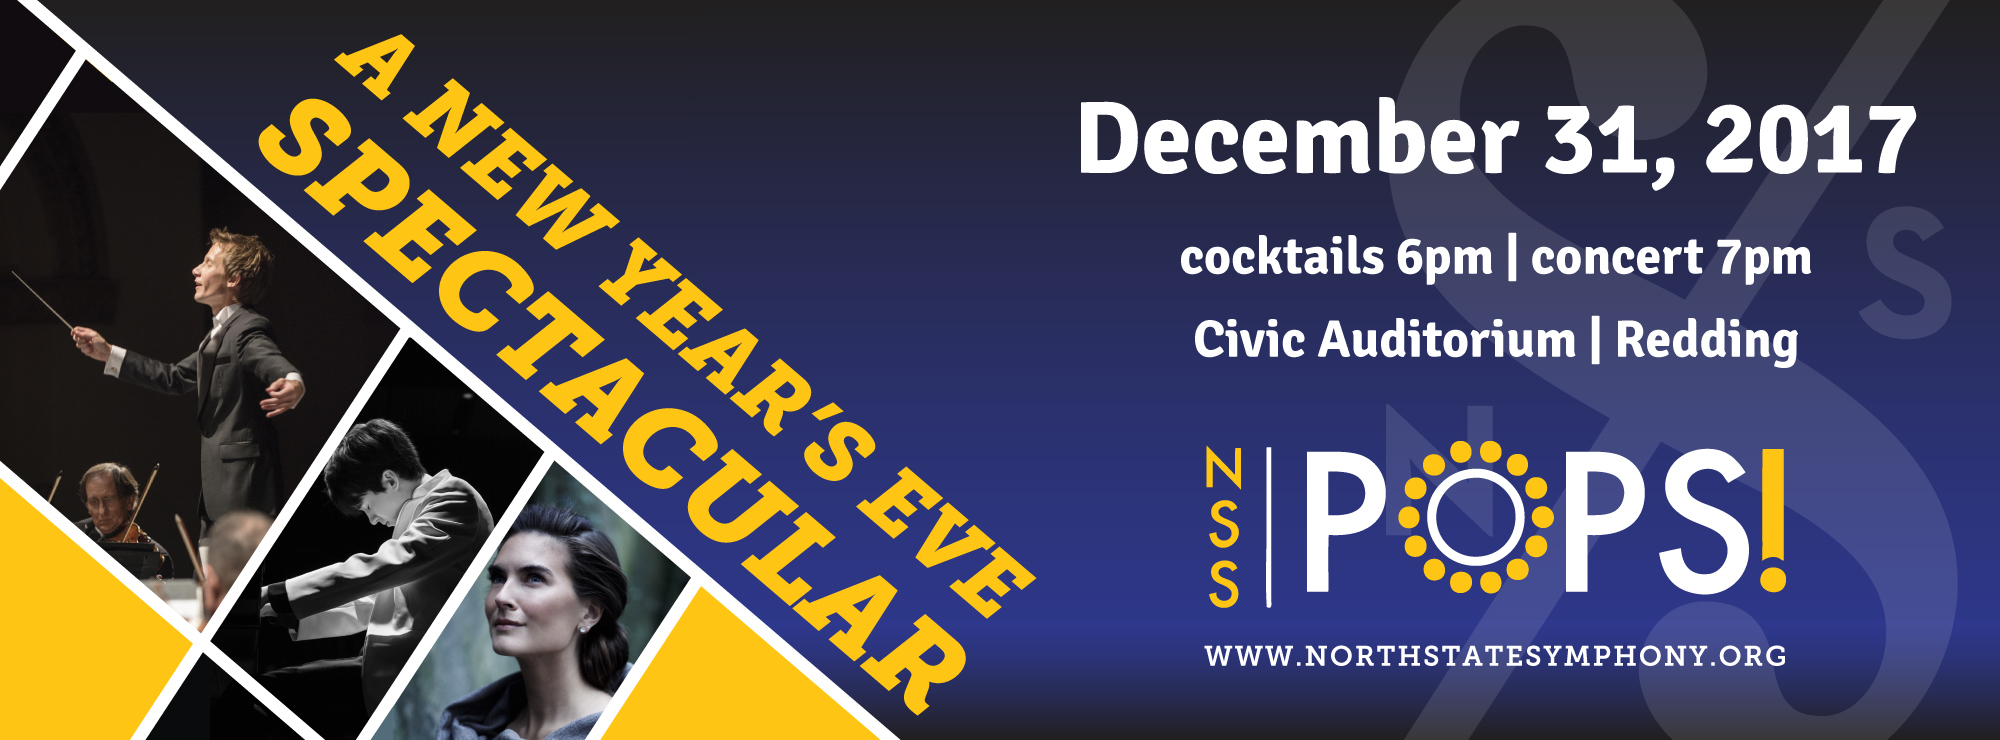 Nss nye email header